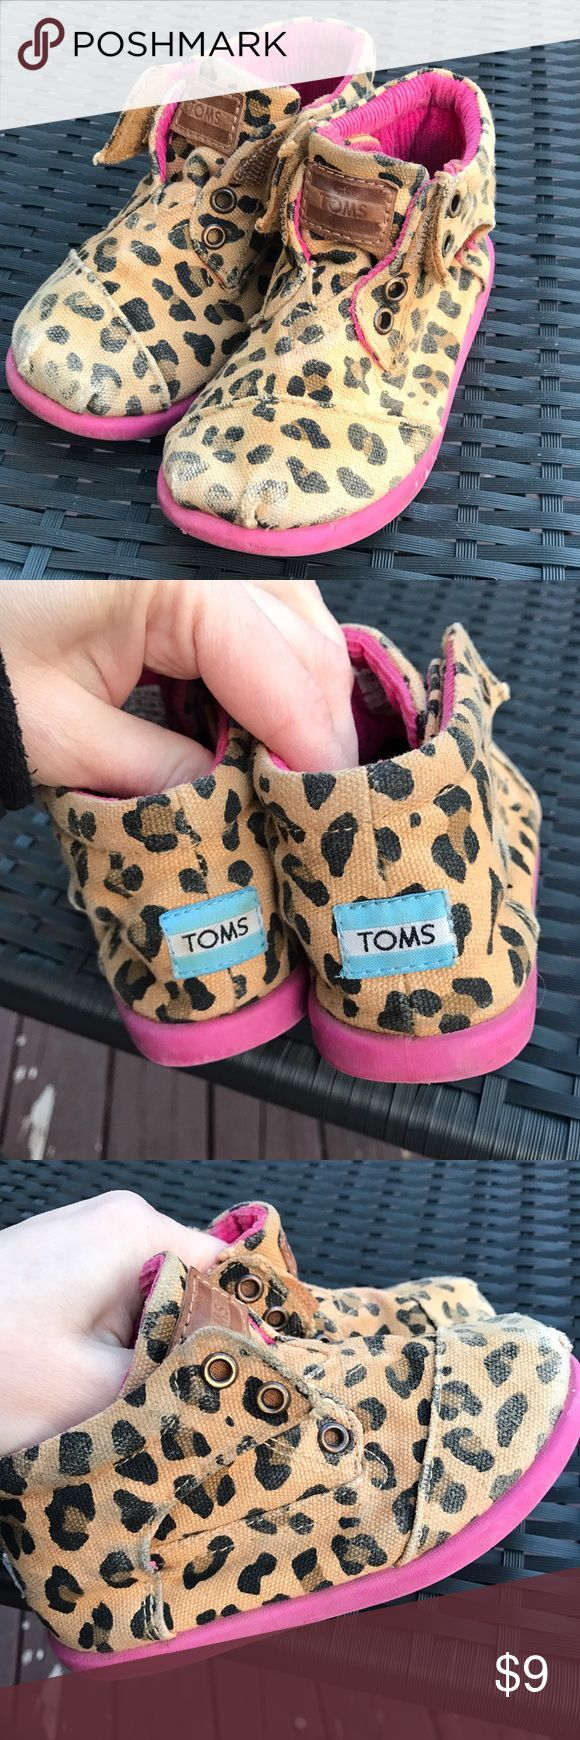 Girls Leopard Toms Shoes Used and shows signs of wear. Size 8. If you have any questions please comment below TOMS Shoes Sneakers